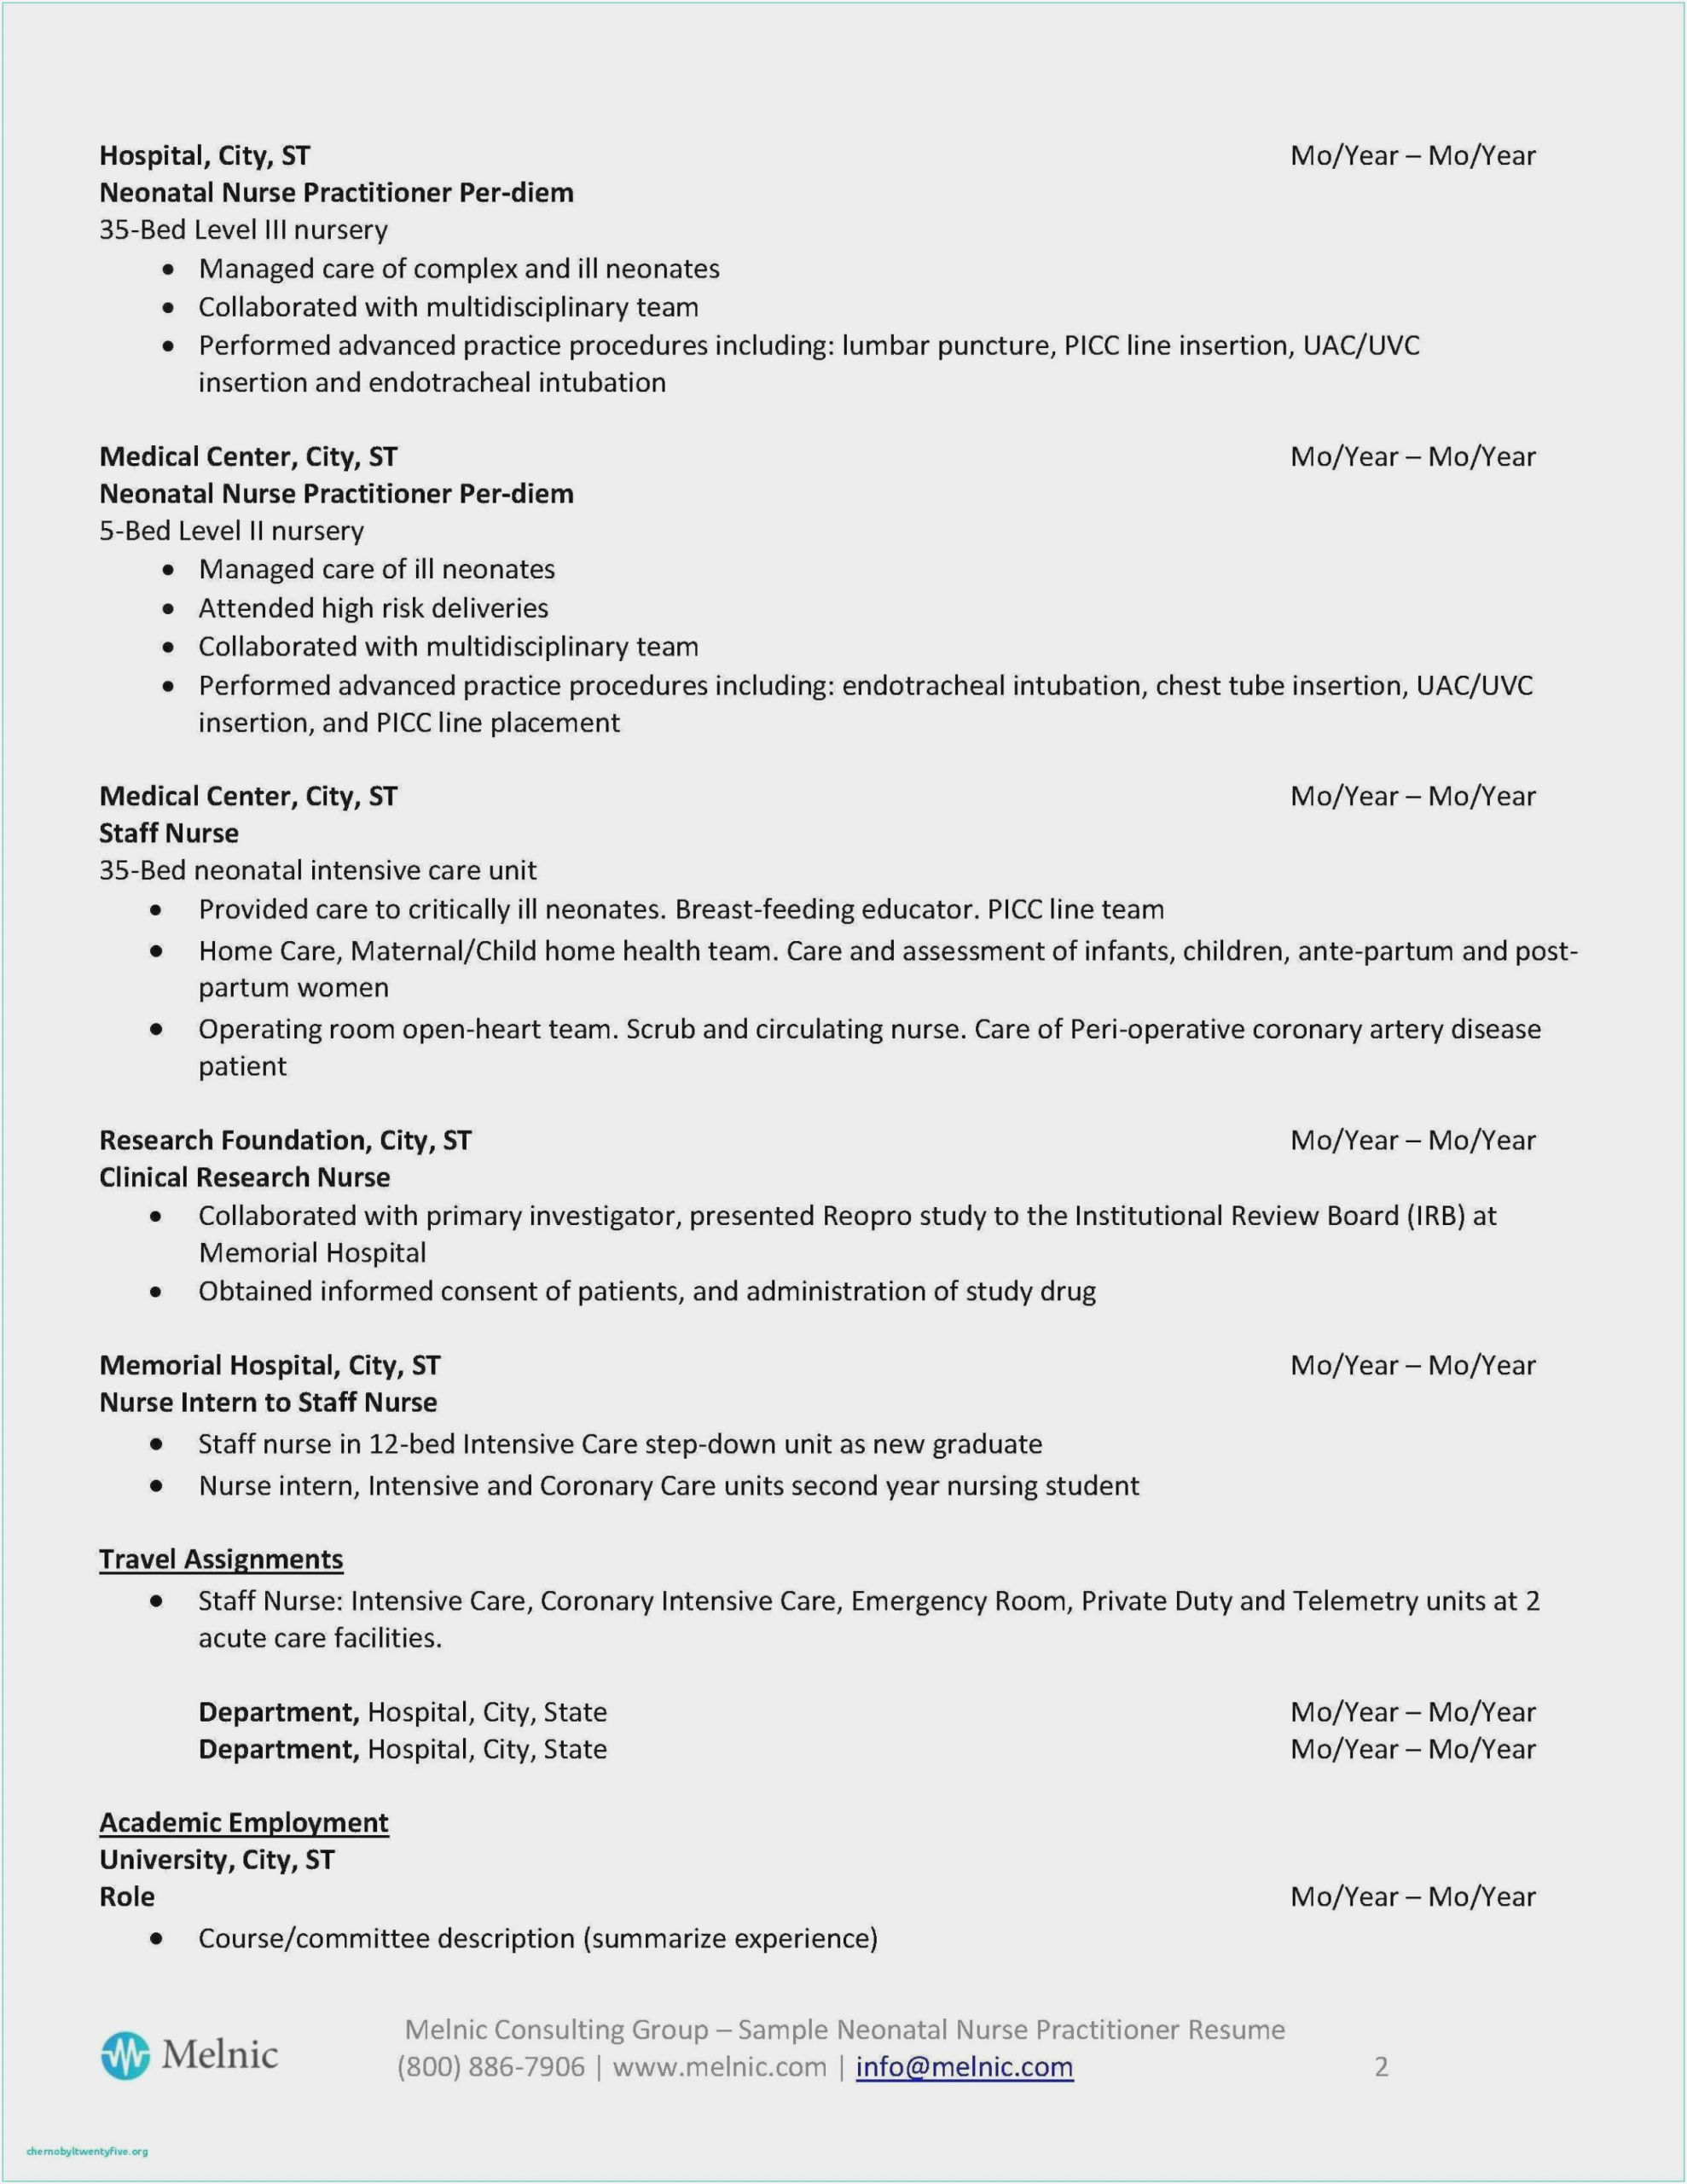 example rn resume objective sample new nurse scaled attractive hobbies for visual Resume New Nurse Resume Objective